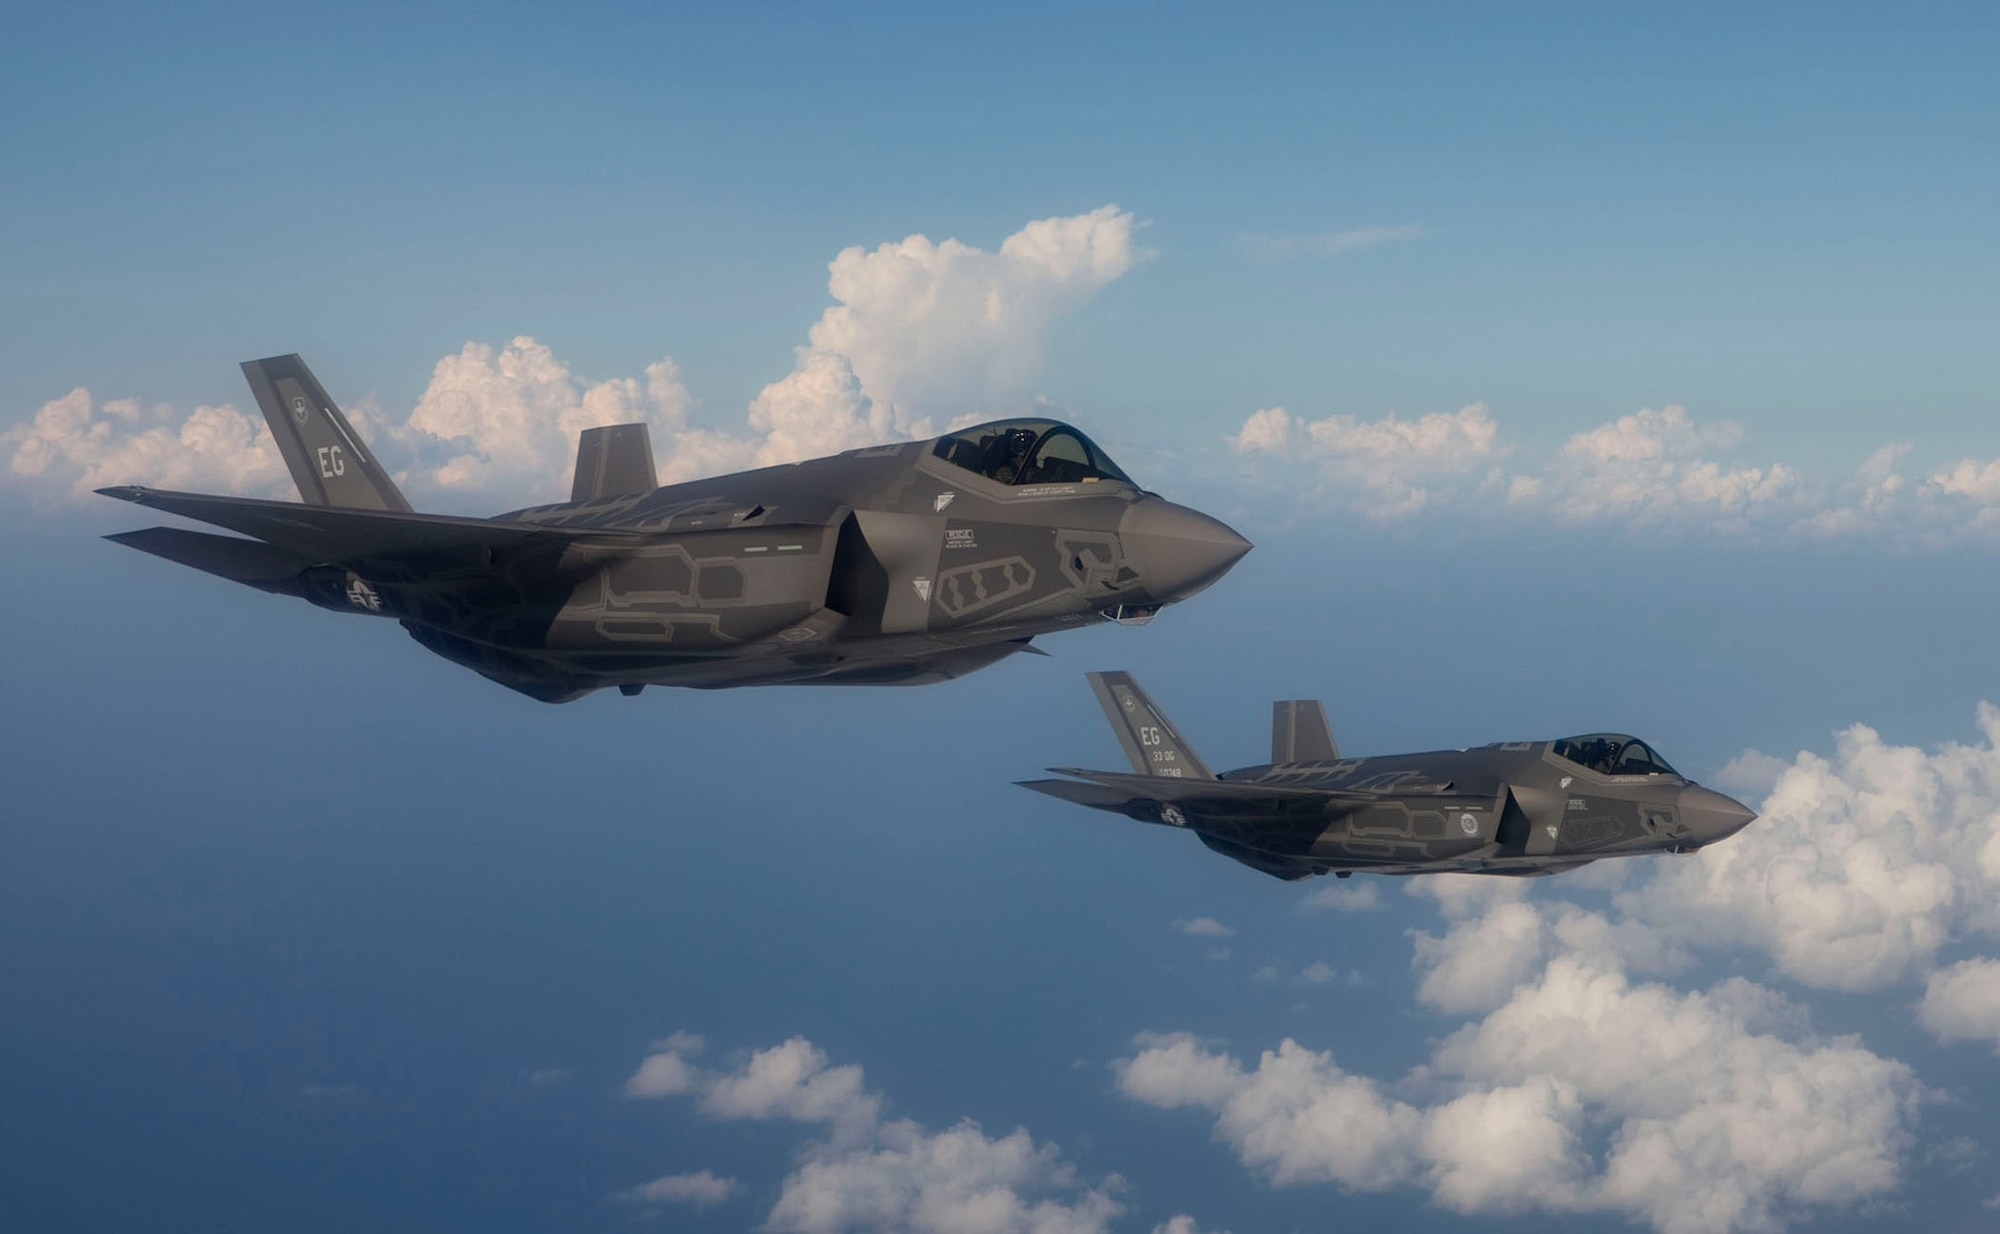 Two F-35 Lightning II joint strike fighter aircraft from Eglin Air Force Base, Fla.(Courtesy photo)